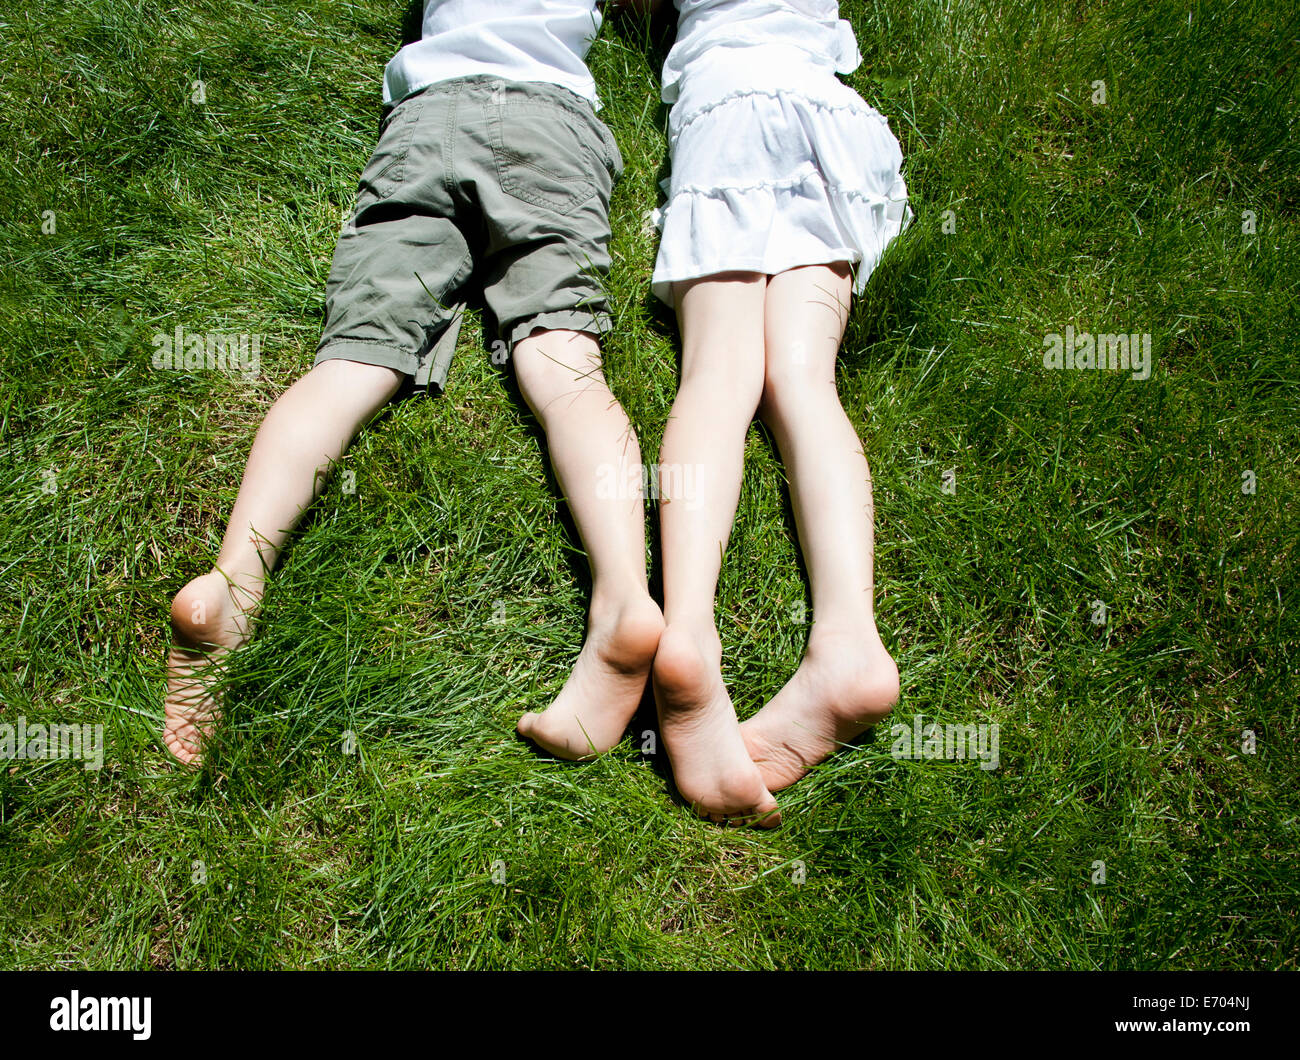 Overhead view of brother and sisters legs as they lay on grass - Stock Image